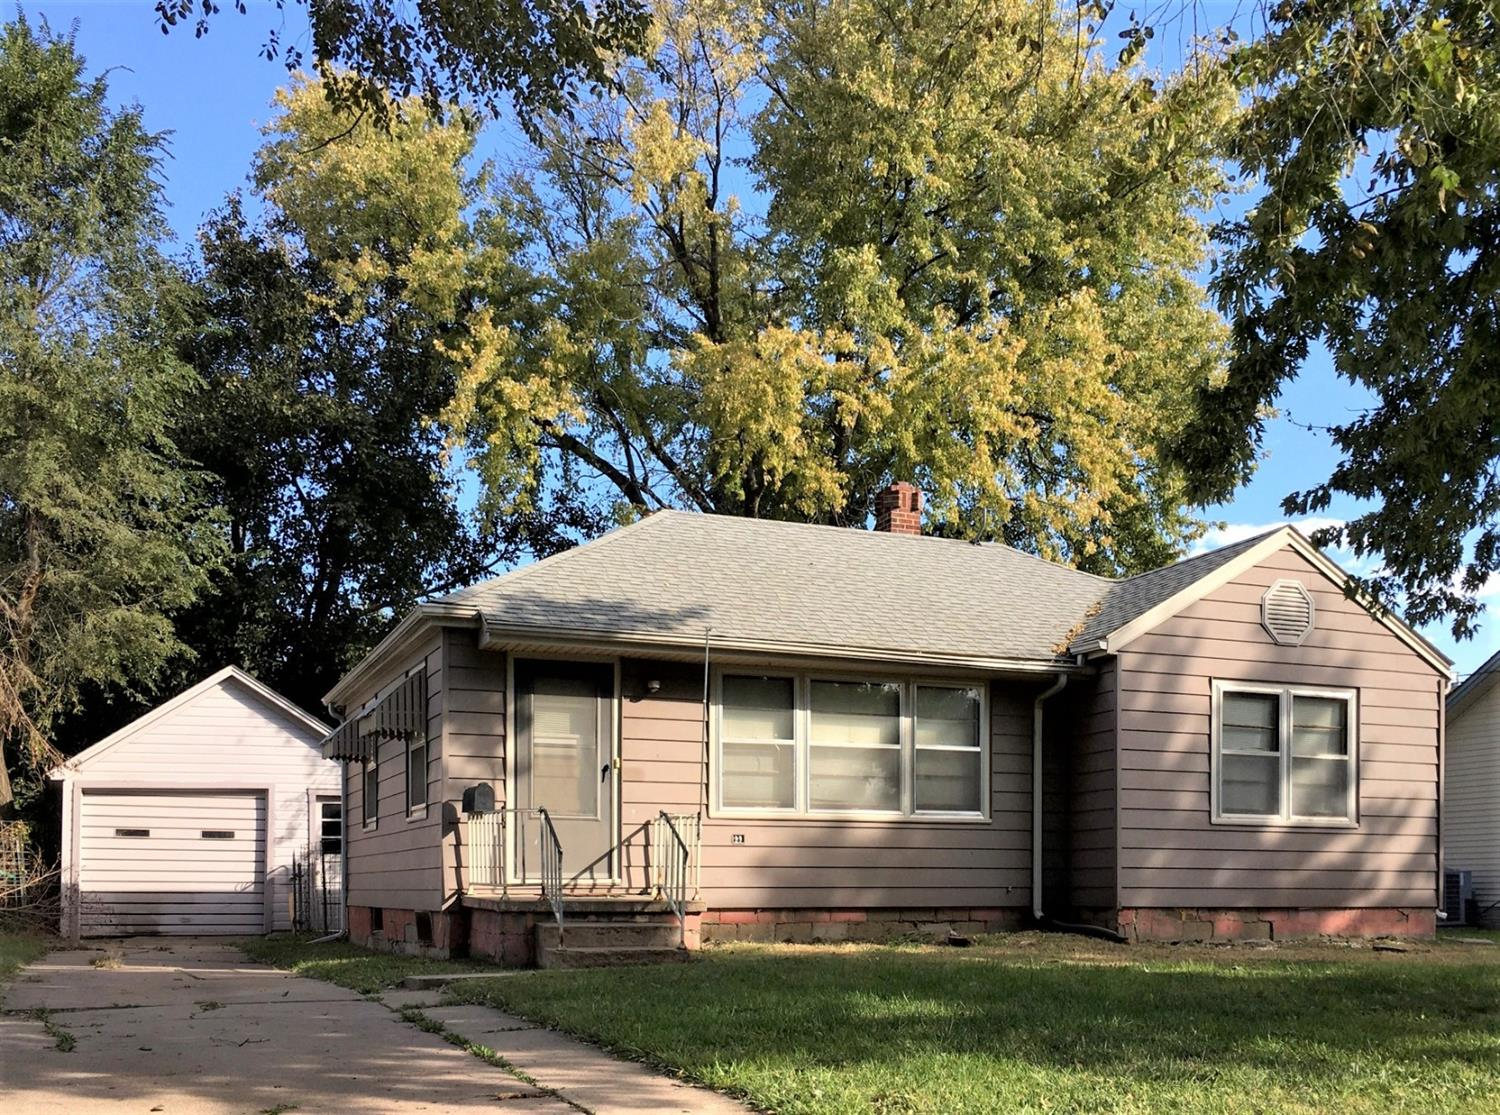 WHY RENT?!...When you can own for less! 2 bd/1 bath with full unfinished basement. Hardwood floors underneath carpet. 1-car detached garage. PLUS huge fenced in backyard!! What a bargain!